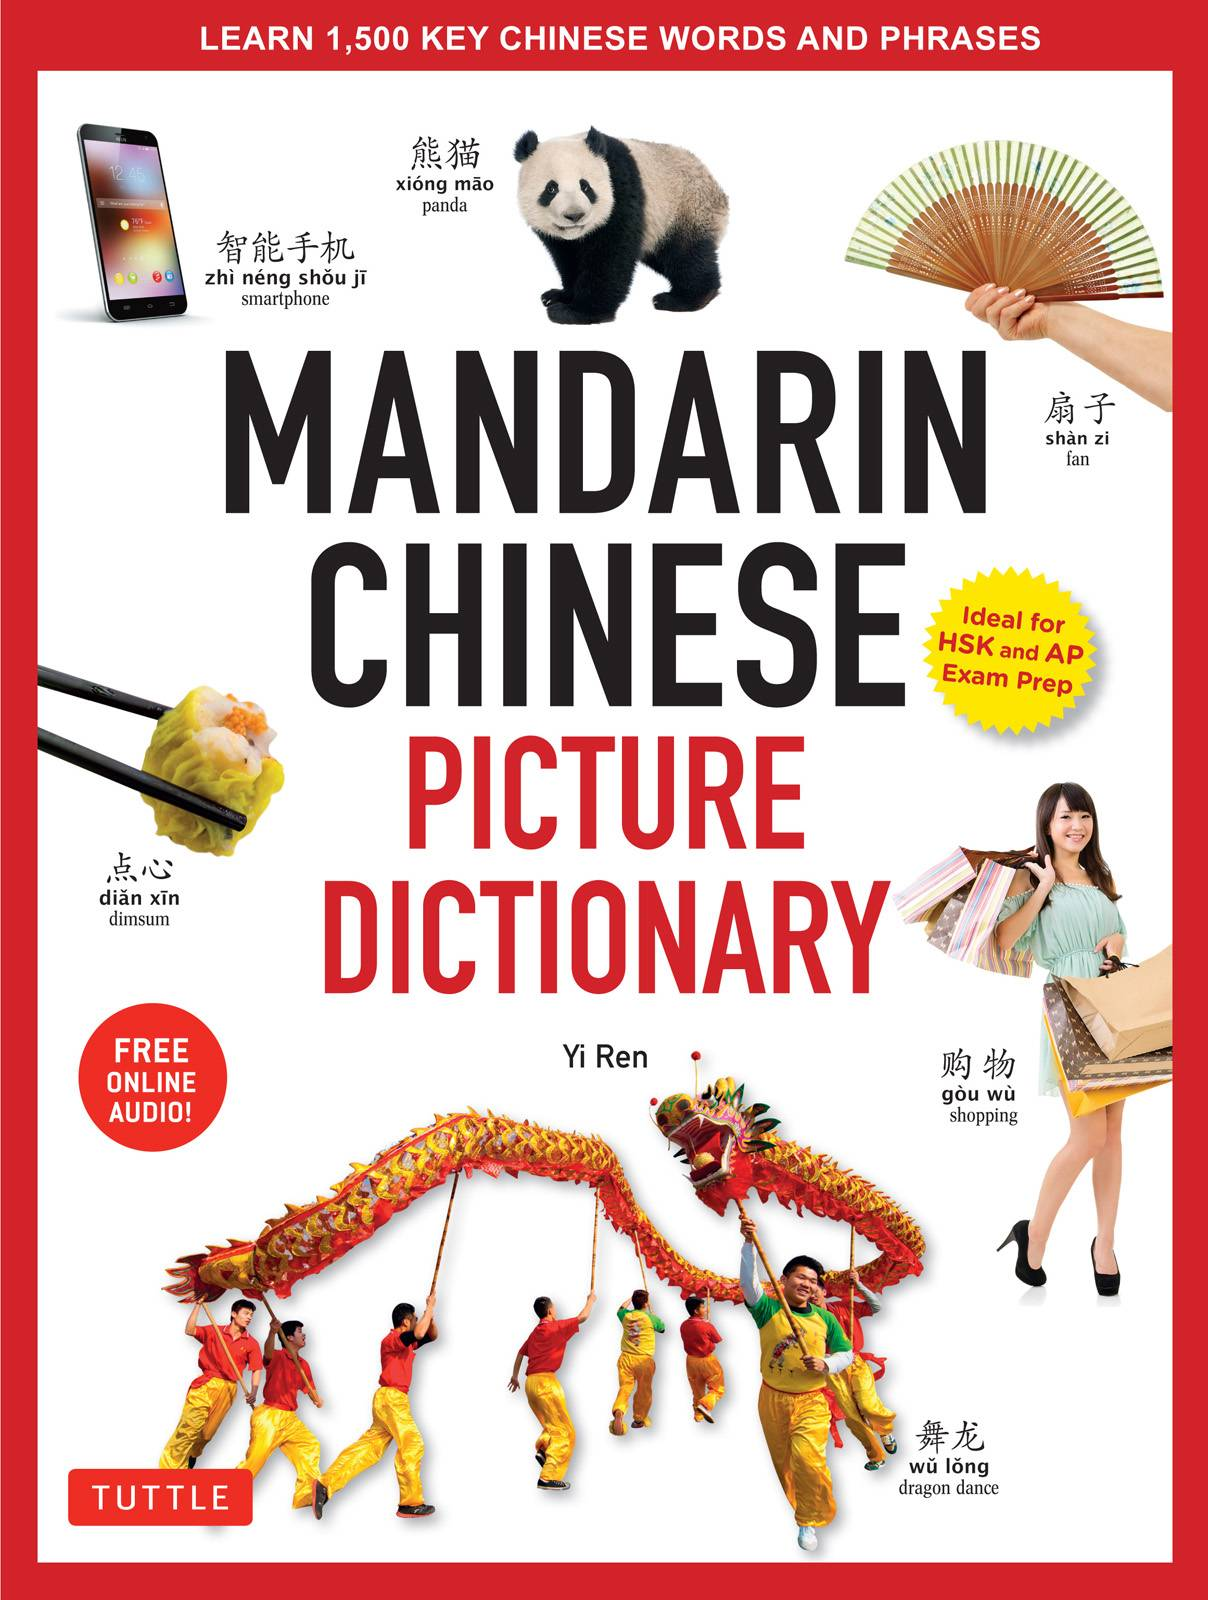 Mandarin Chinese Picture Dictionary: Learn 1000 Key Chinese Words and Phrases